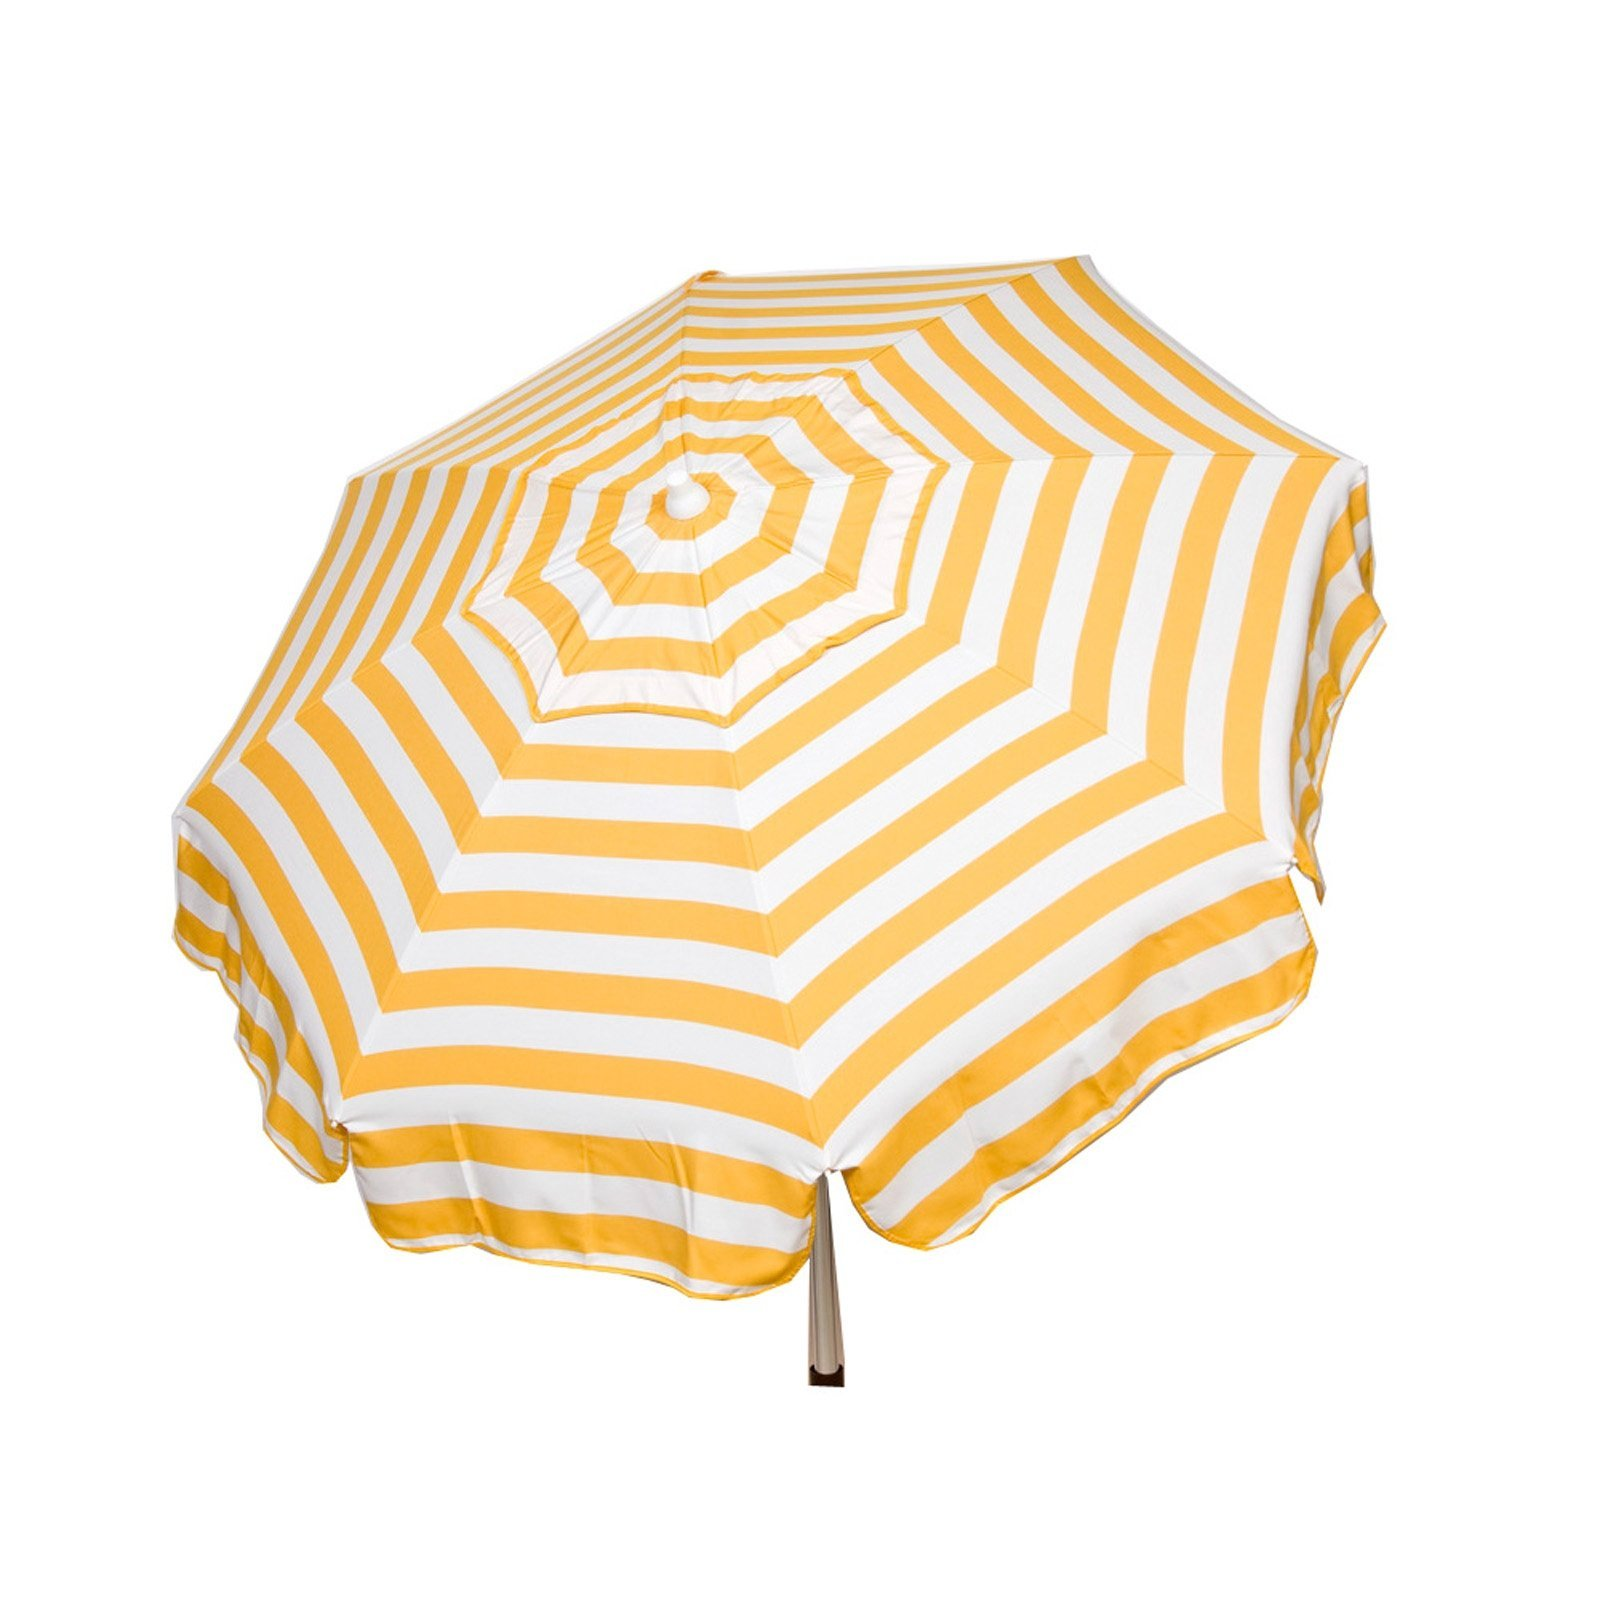 6ft Italian Market Tilt Umbrella Home Patio Sun Canopy Yellow Stripe Beach Pole